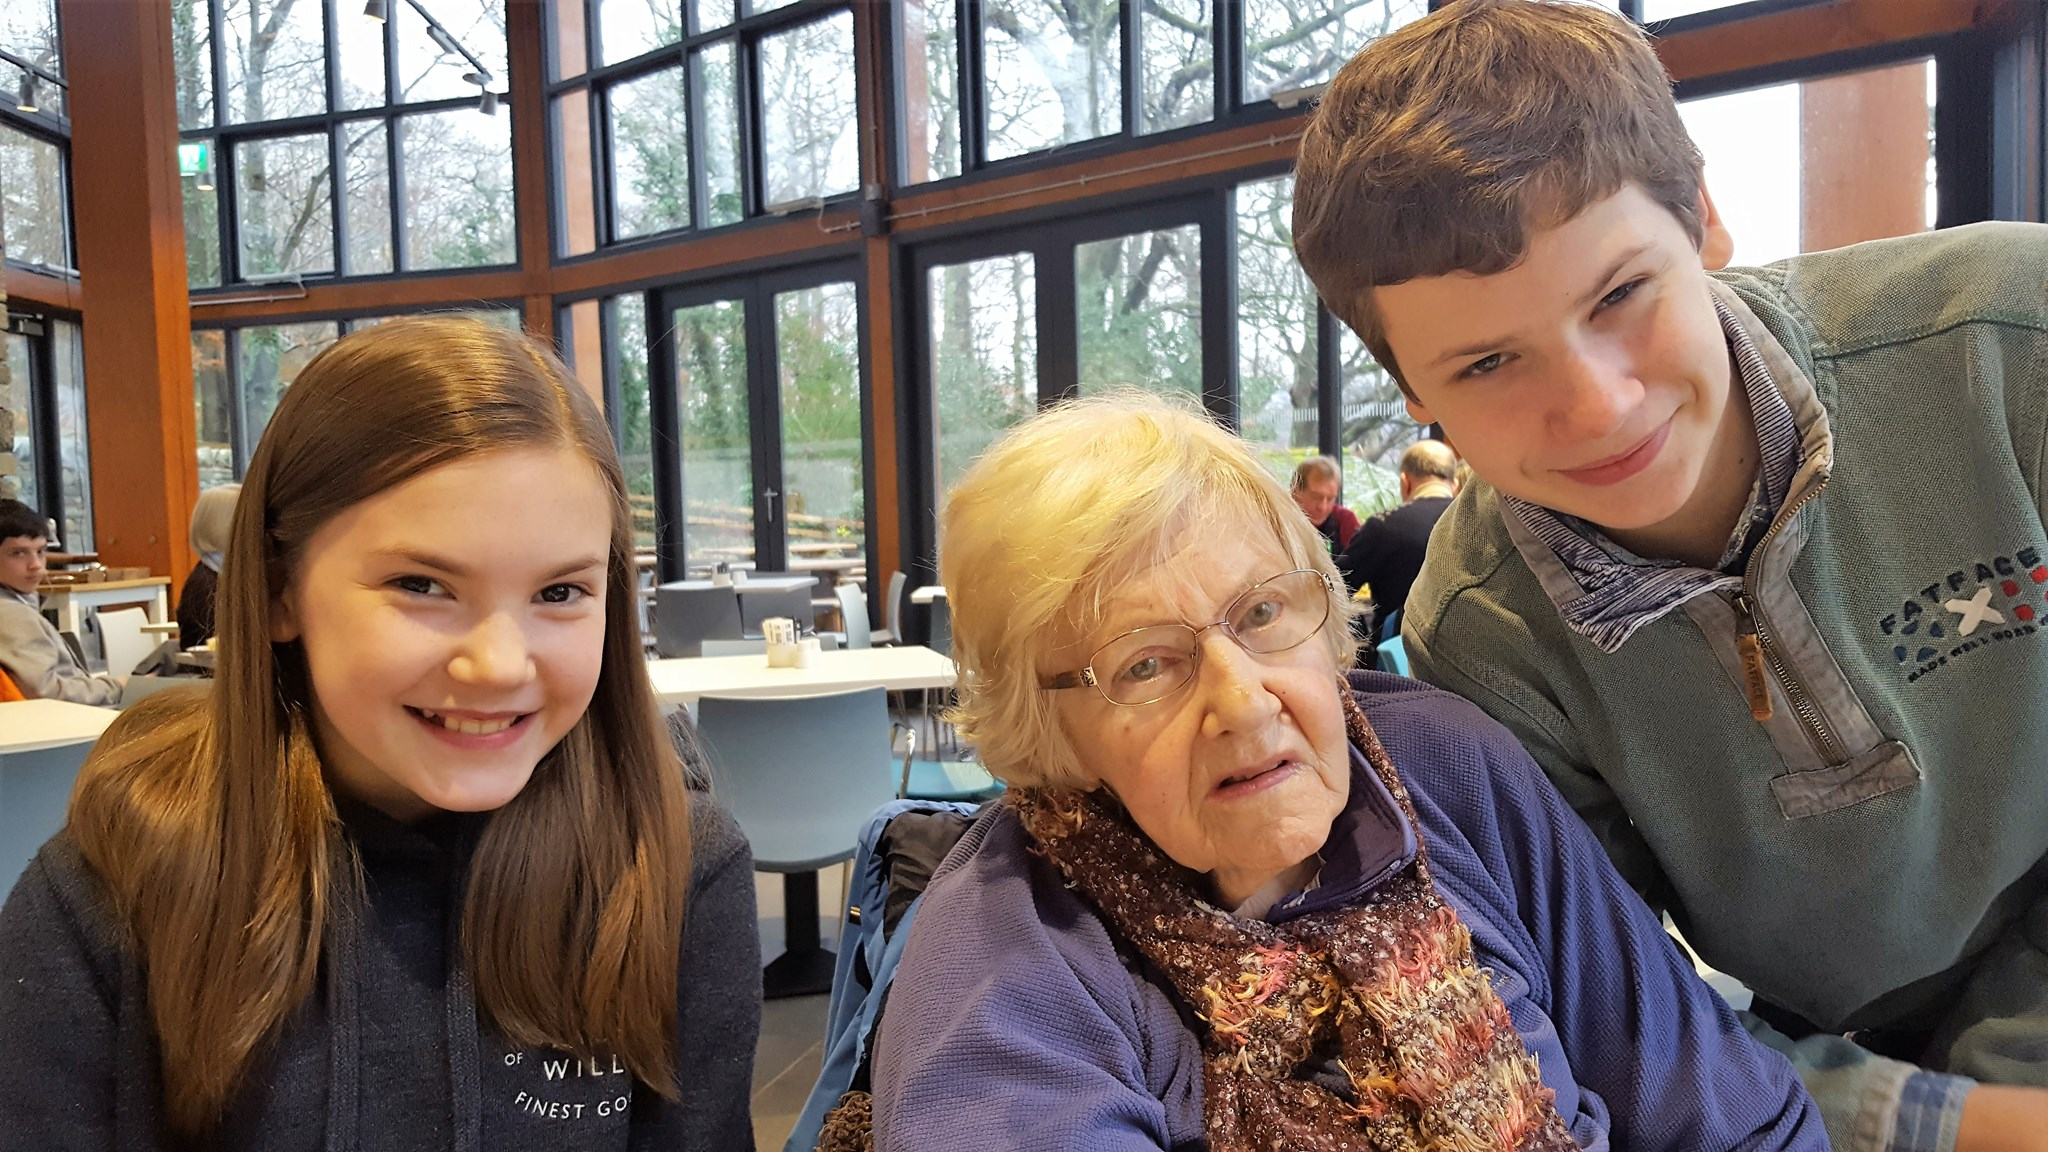 January 2017 - Lunch in Lakeside Cafe, Keswick with Daniel and Sophie